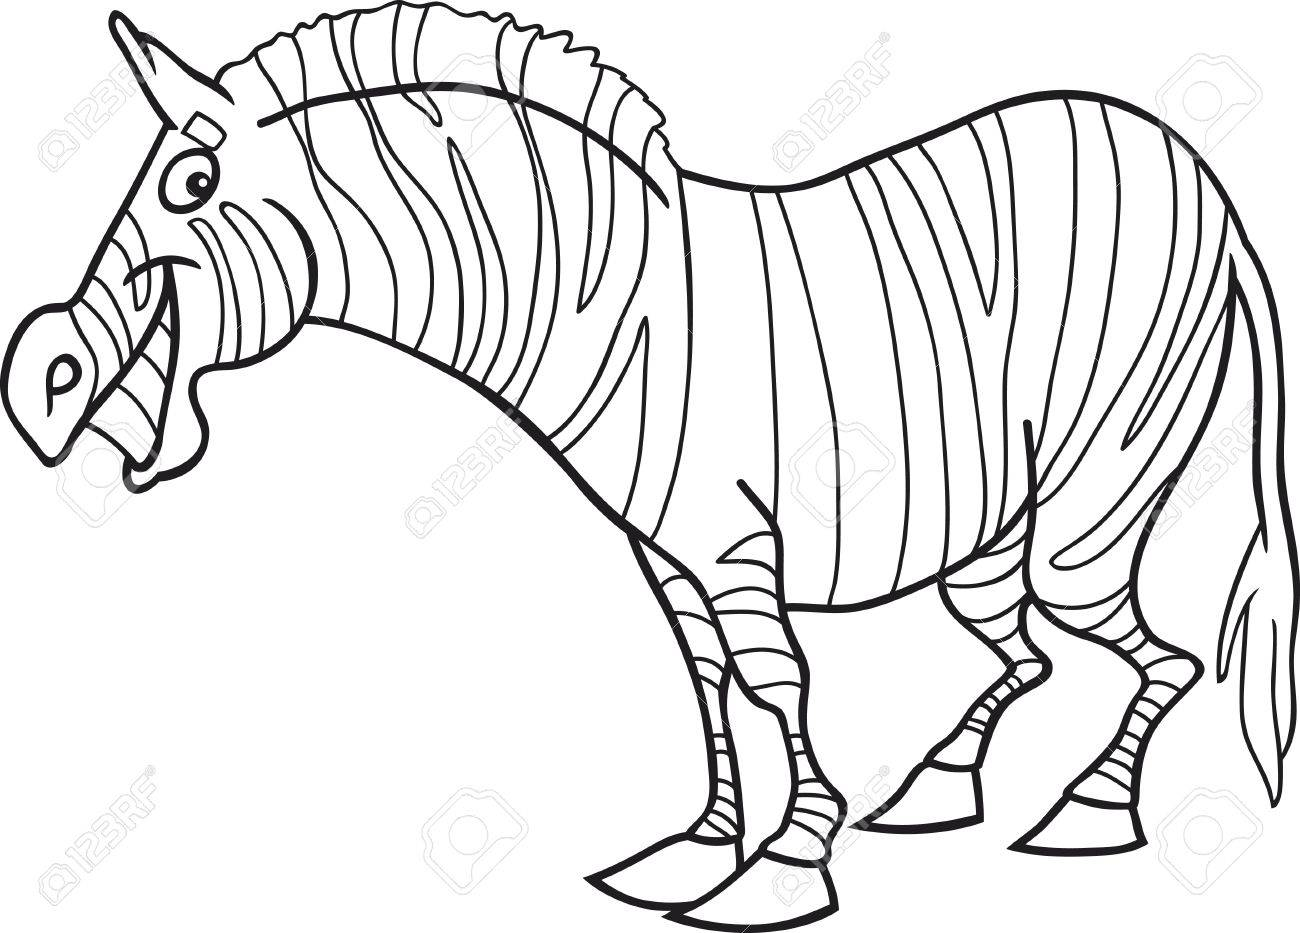 funny zebra for coloring book